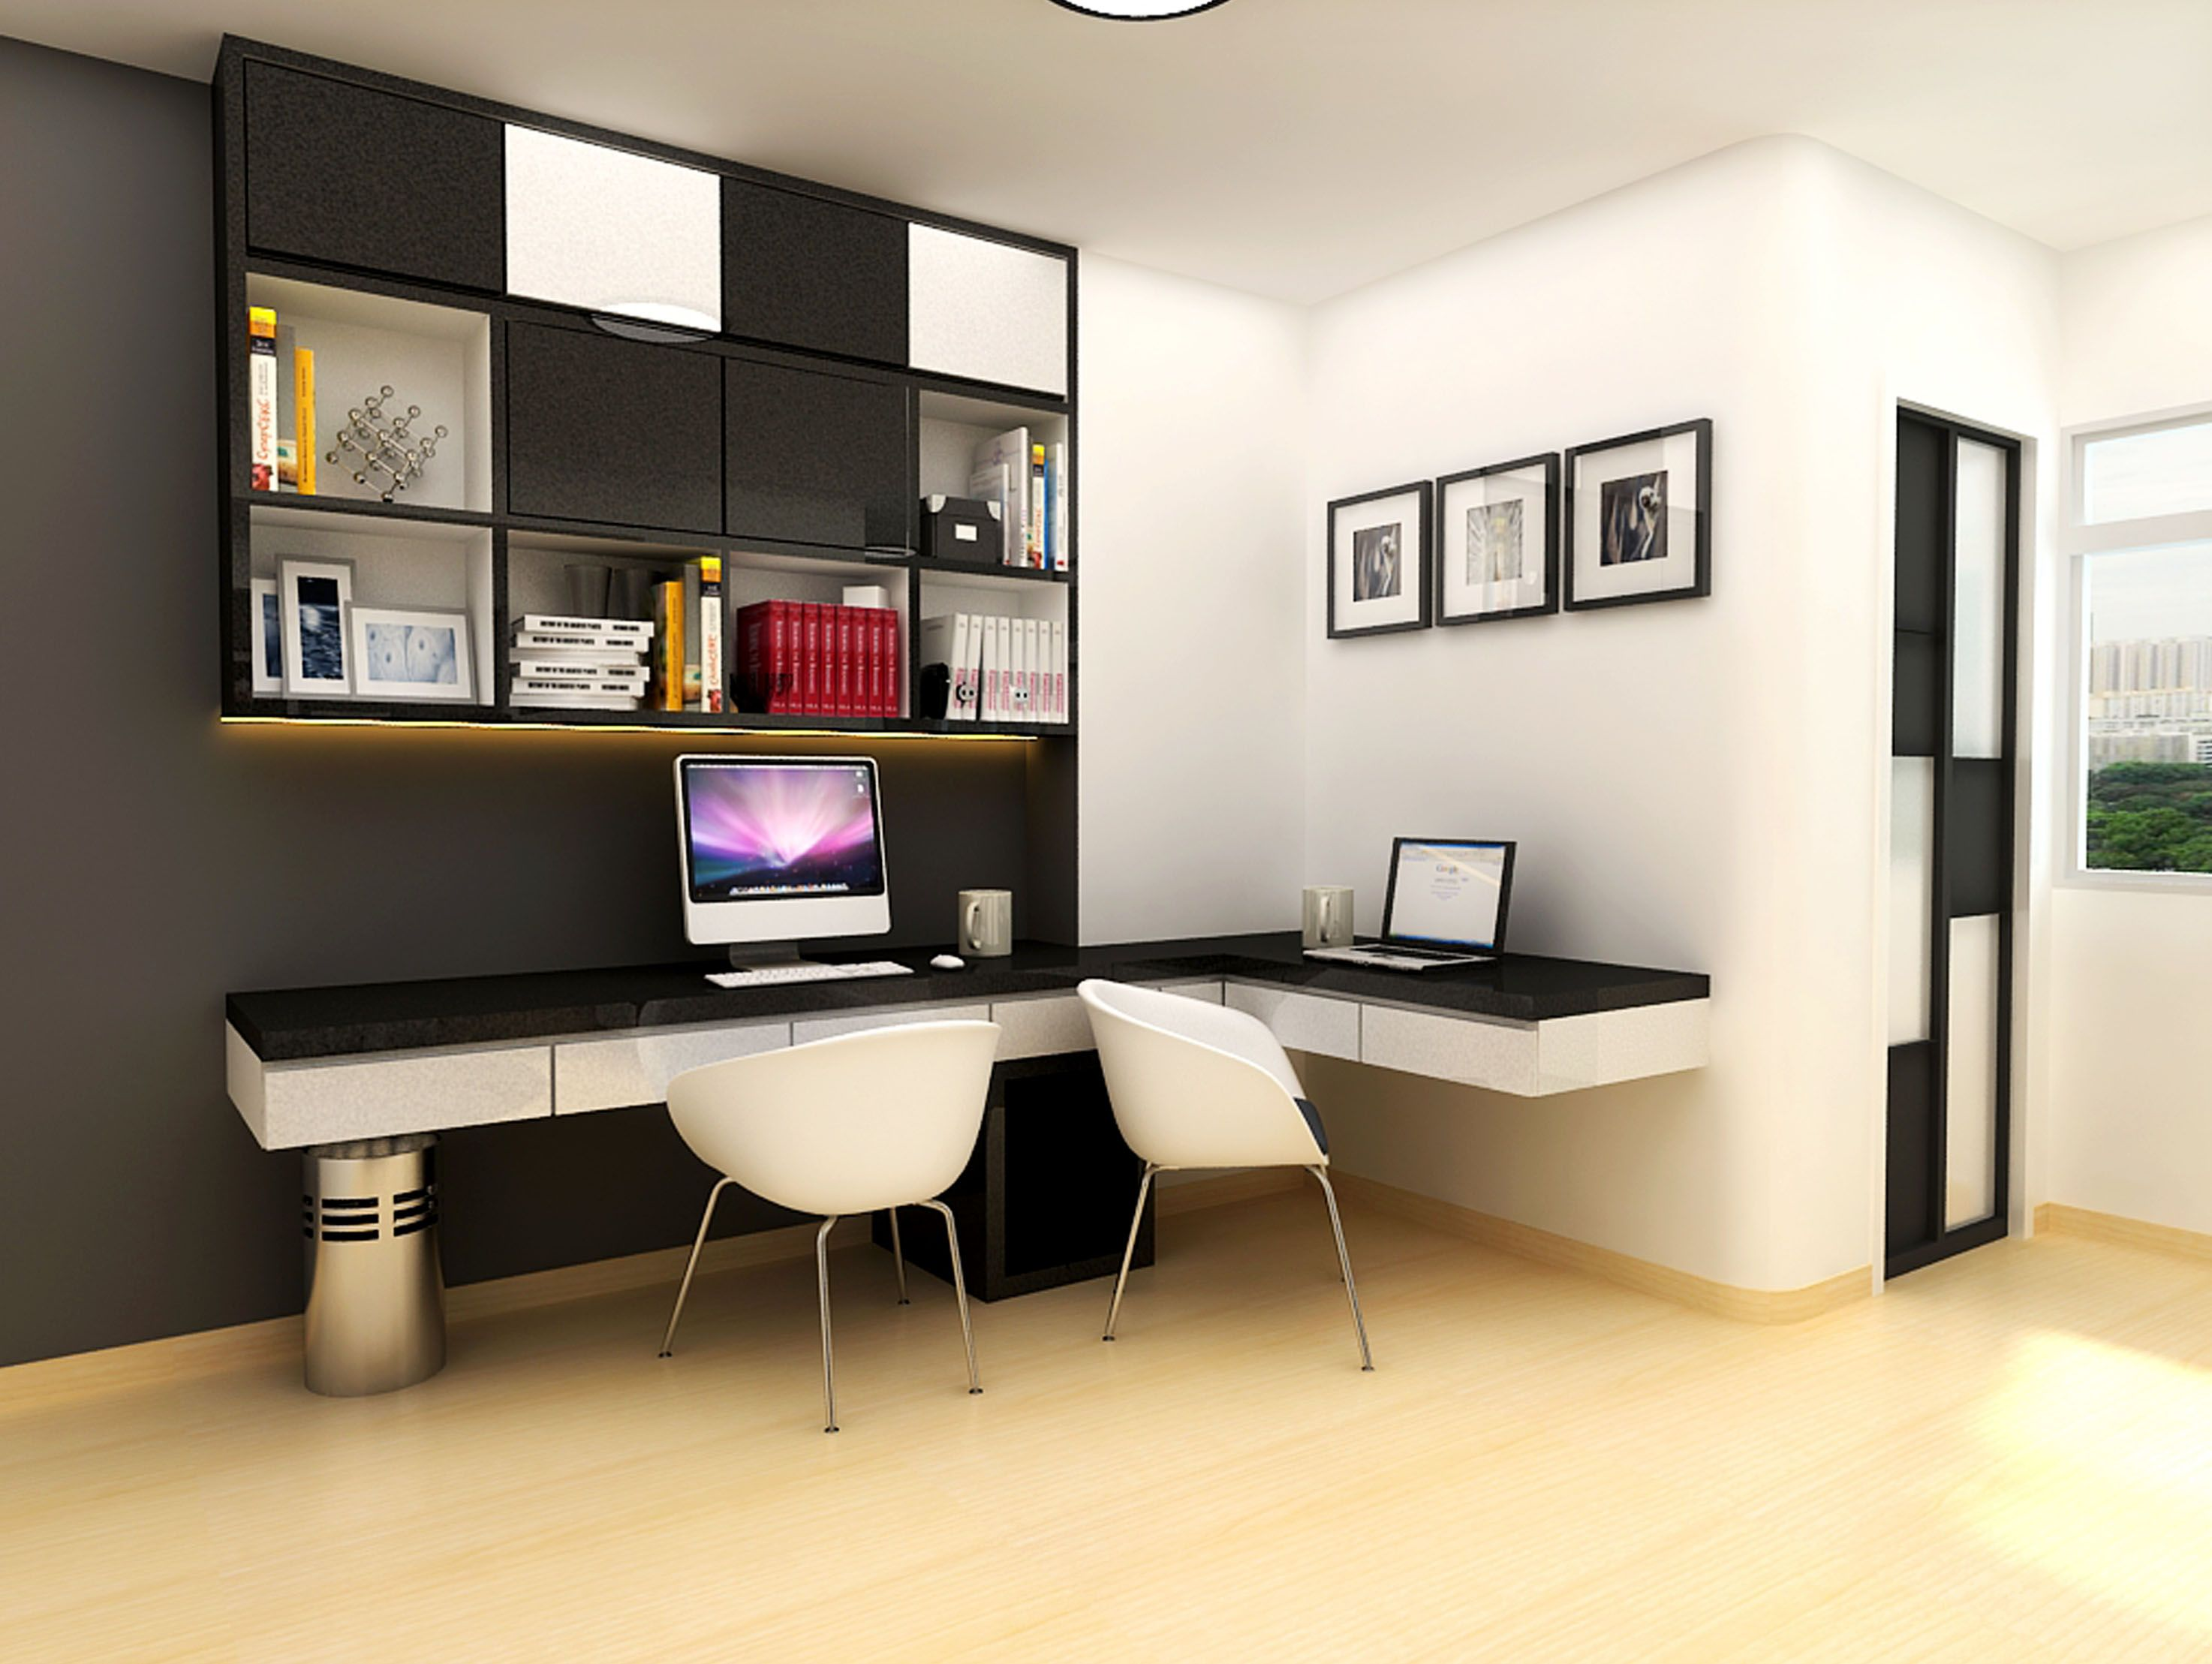 118 Study Room Ideas | Modern study rooms, Study room design ...